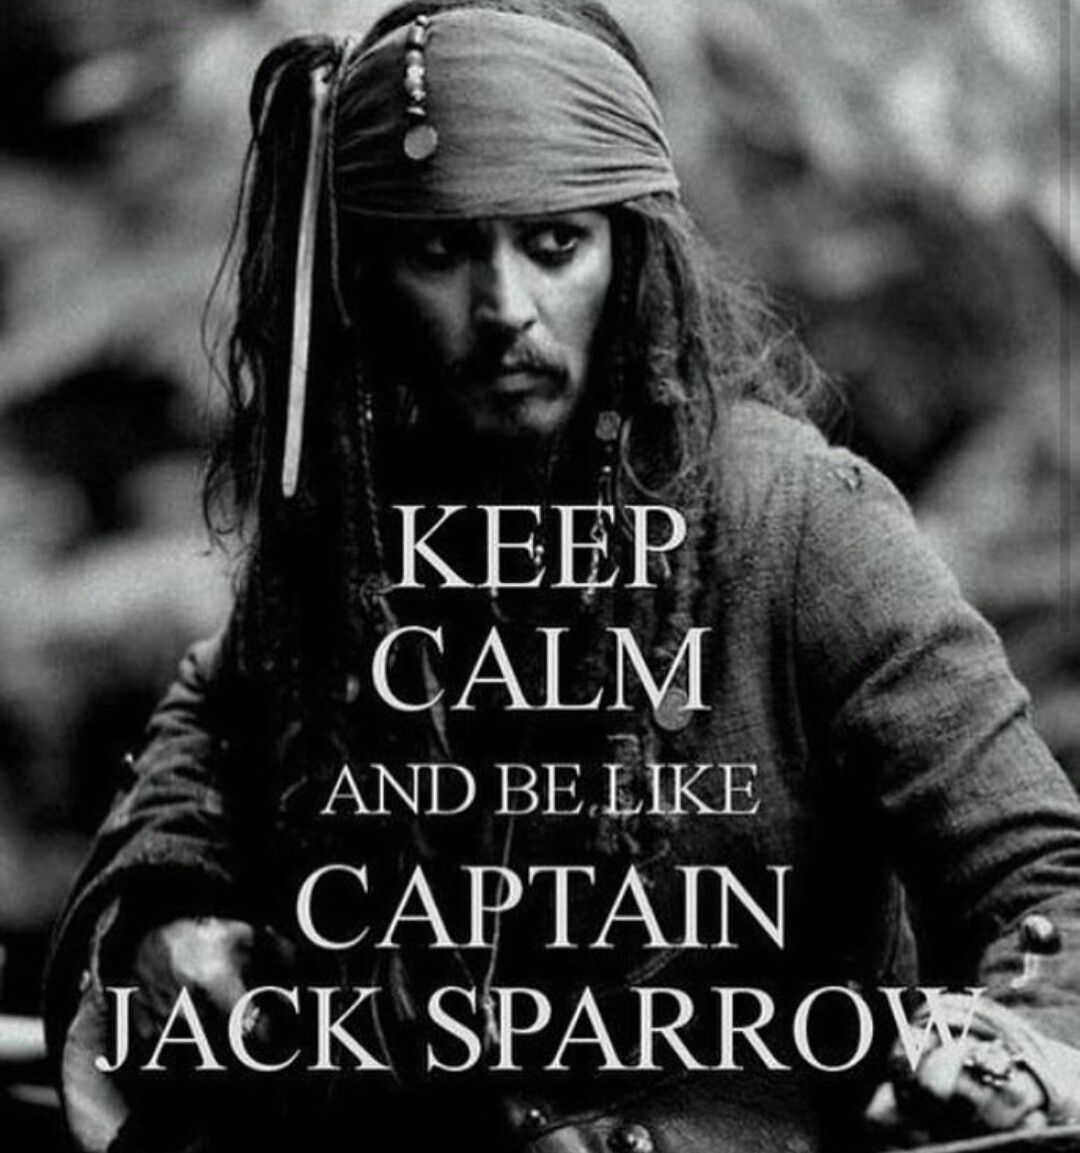 Captain Jack Sparrow Quotes Pinterest Lexi_Niccole_  Pirates Pinterest  Caribbean Jack